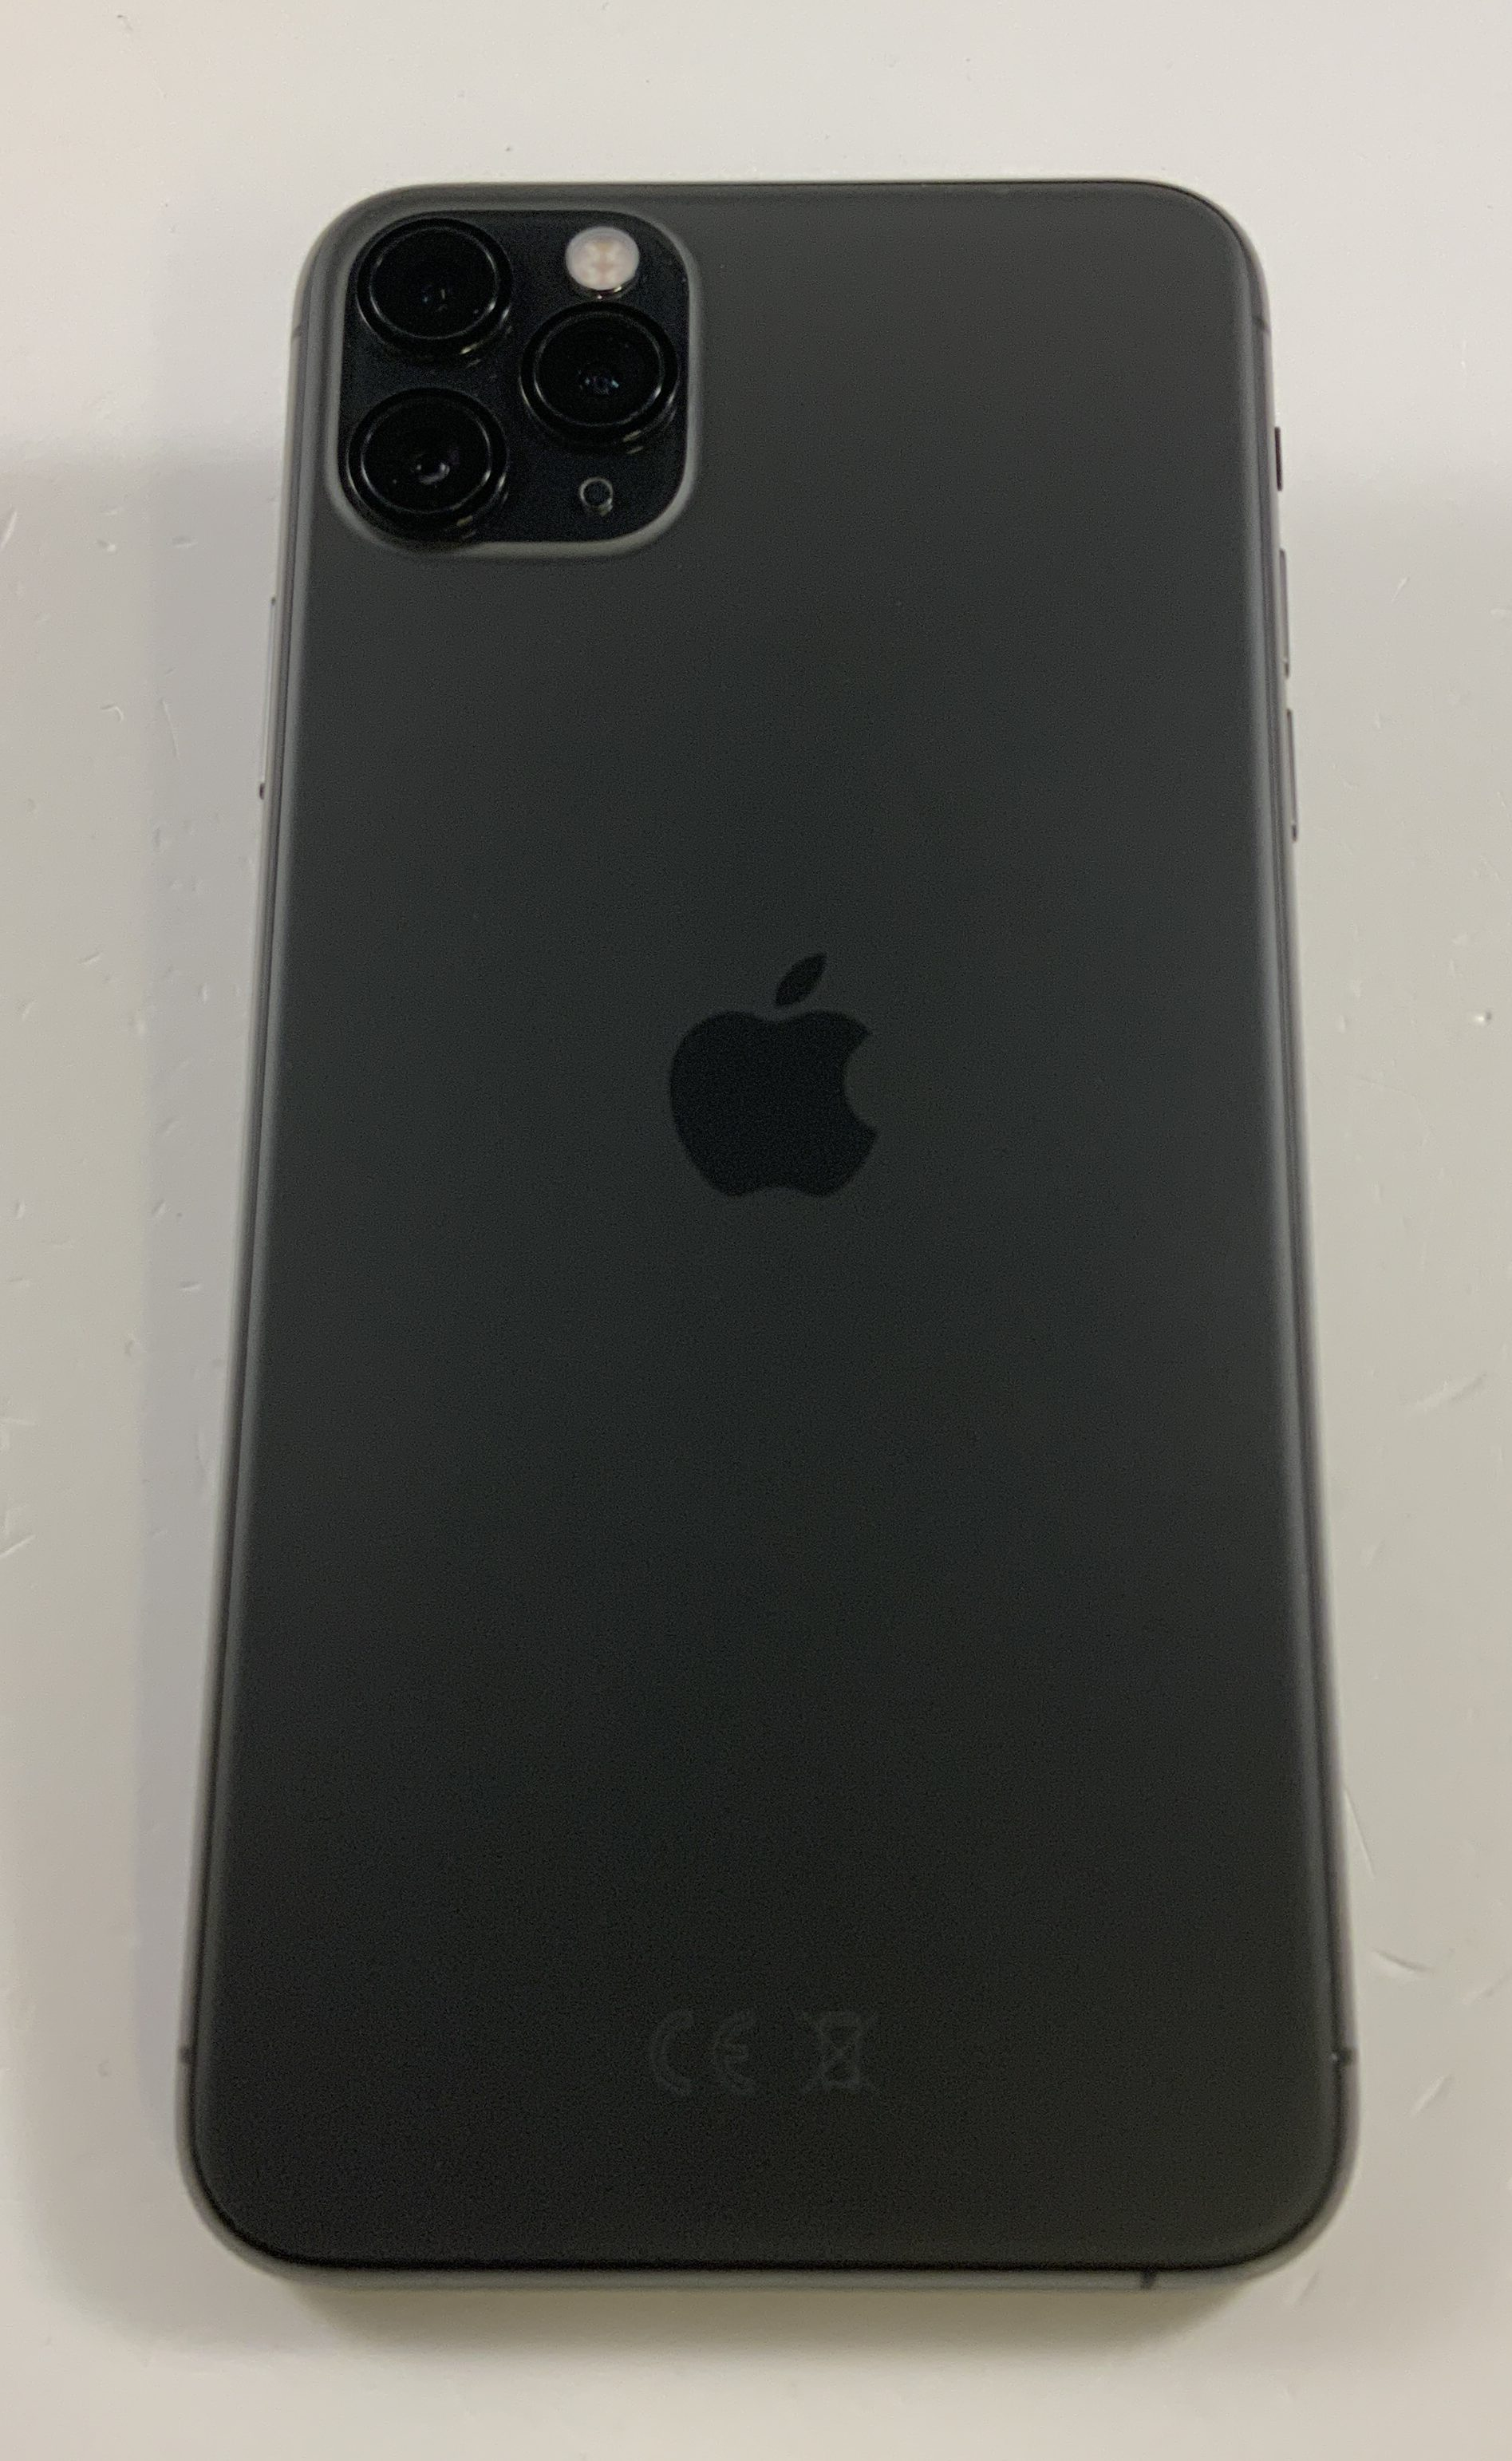 iPhone 11 Pro Max 64GB, 64GB, Space Gray, imagen 1